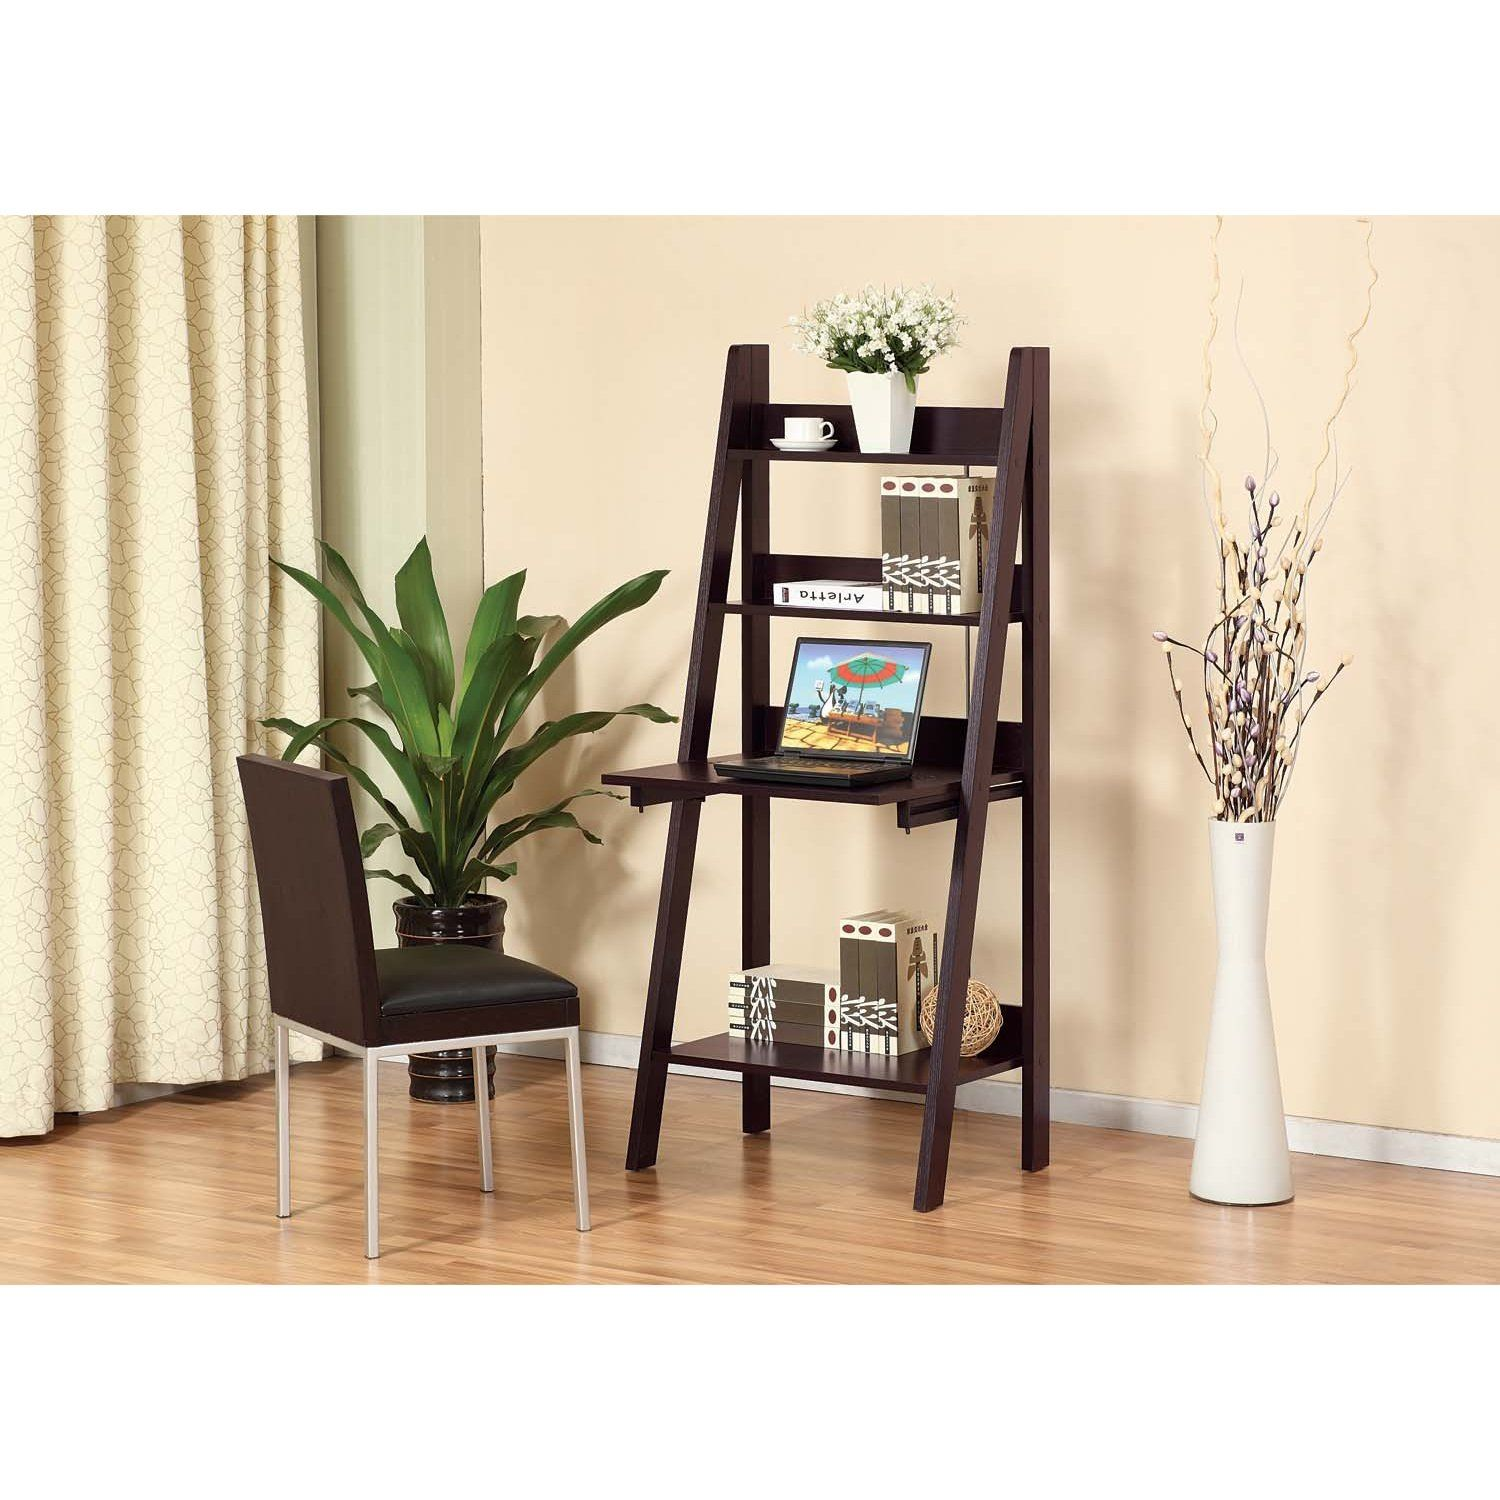 Nikki ladder style writing desk display shelf feature a flip